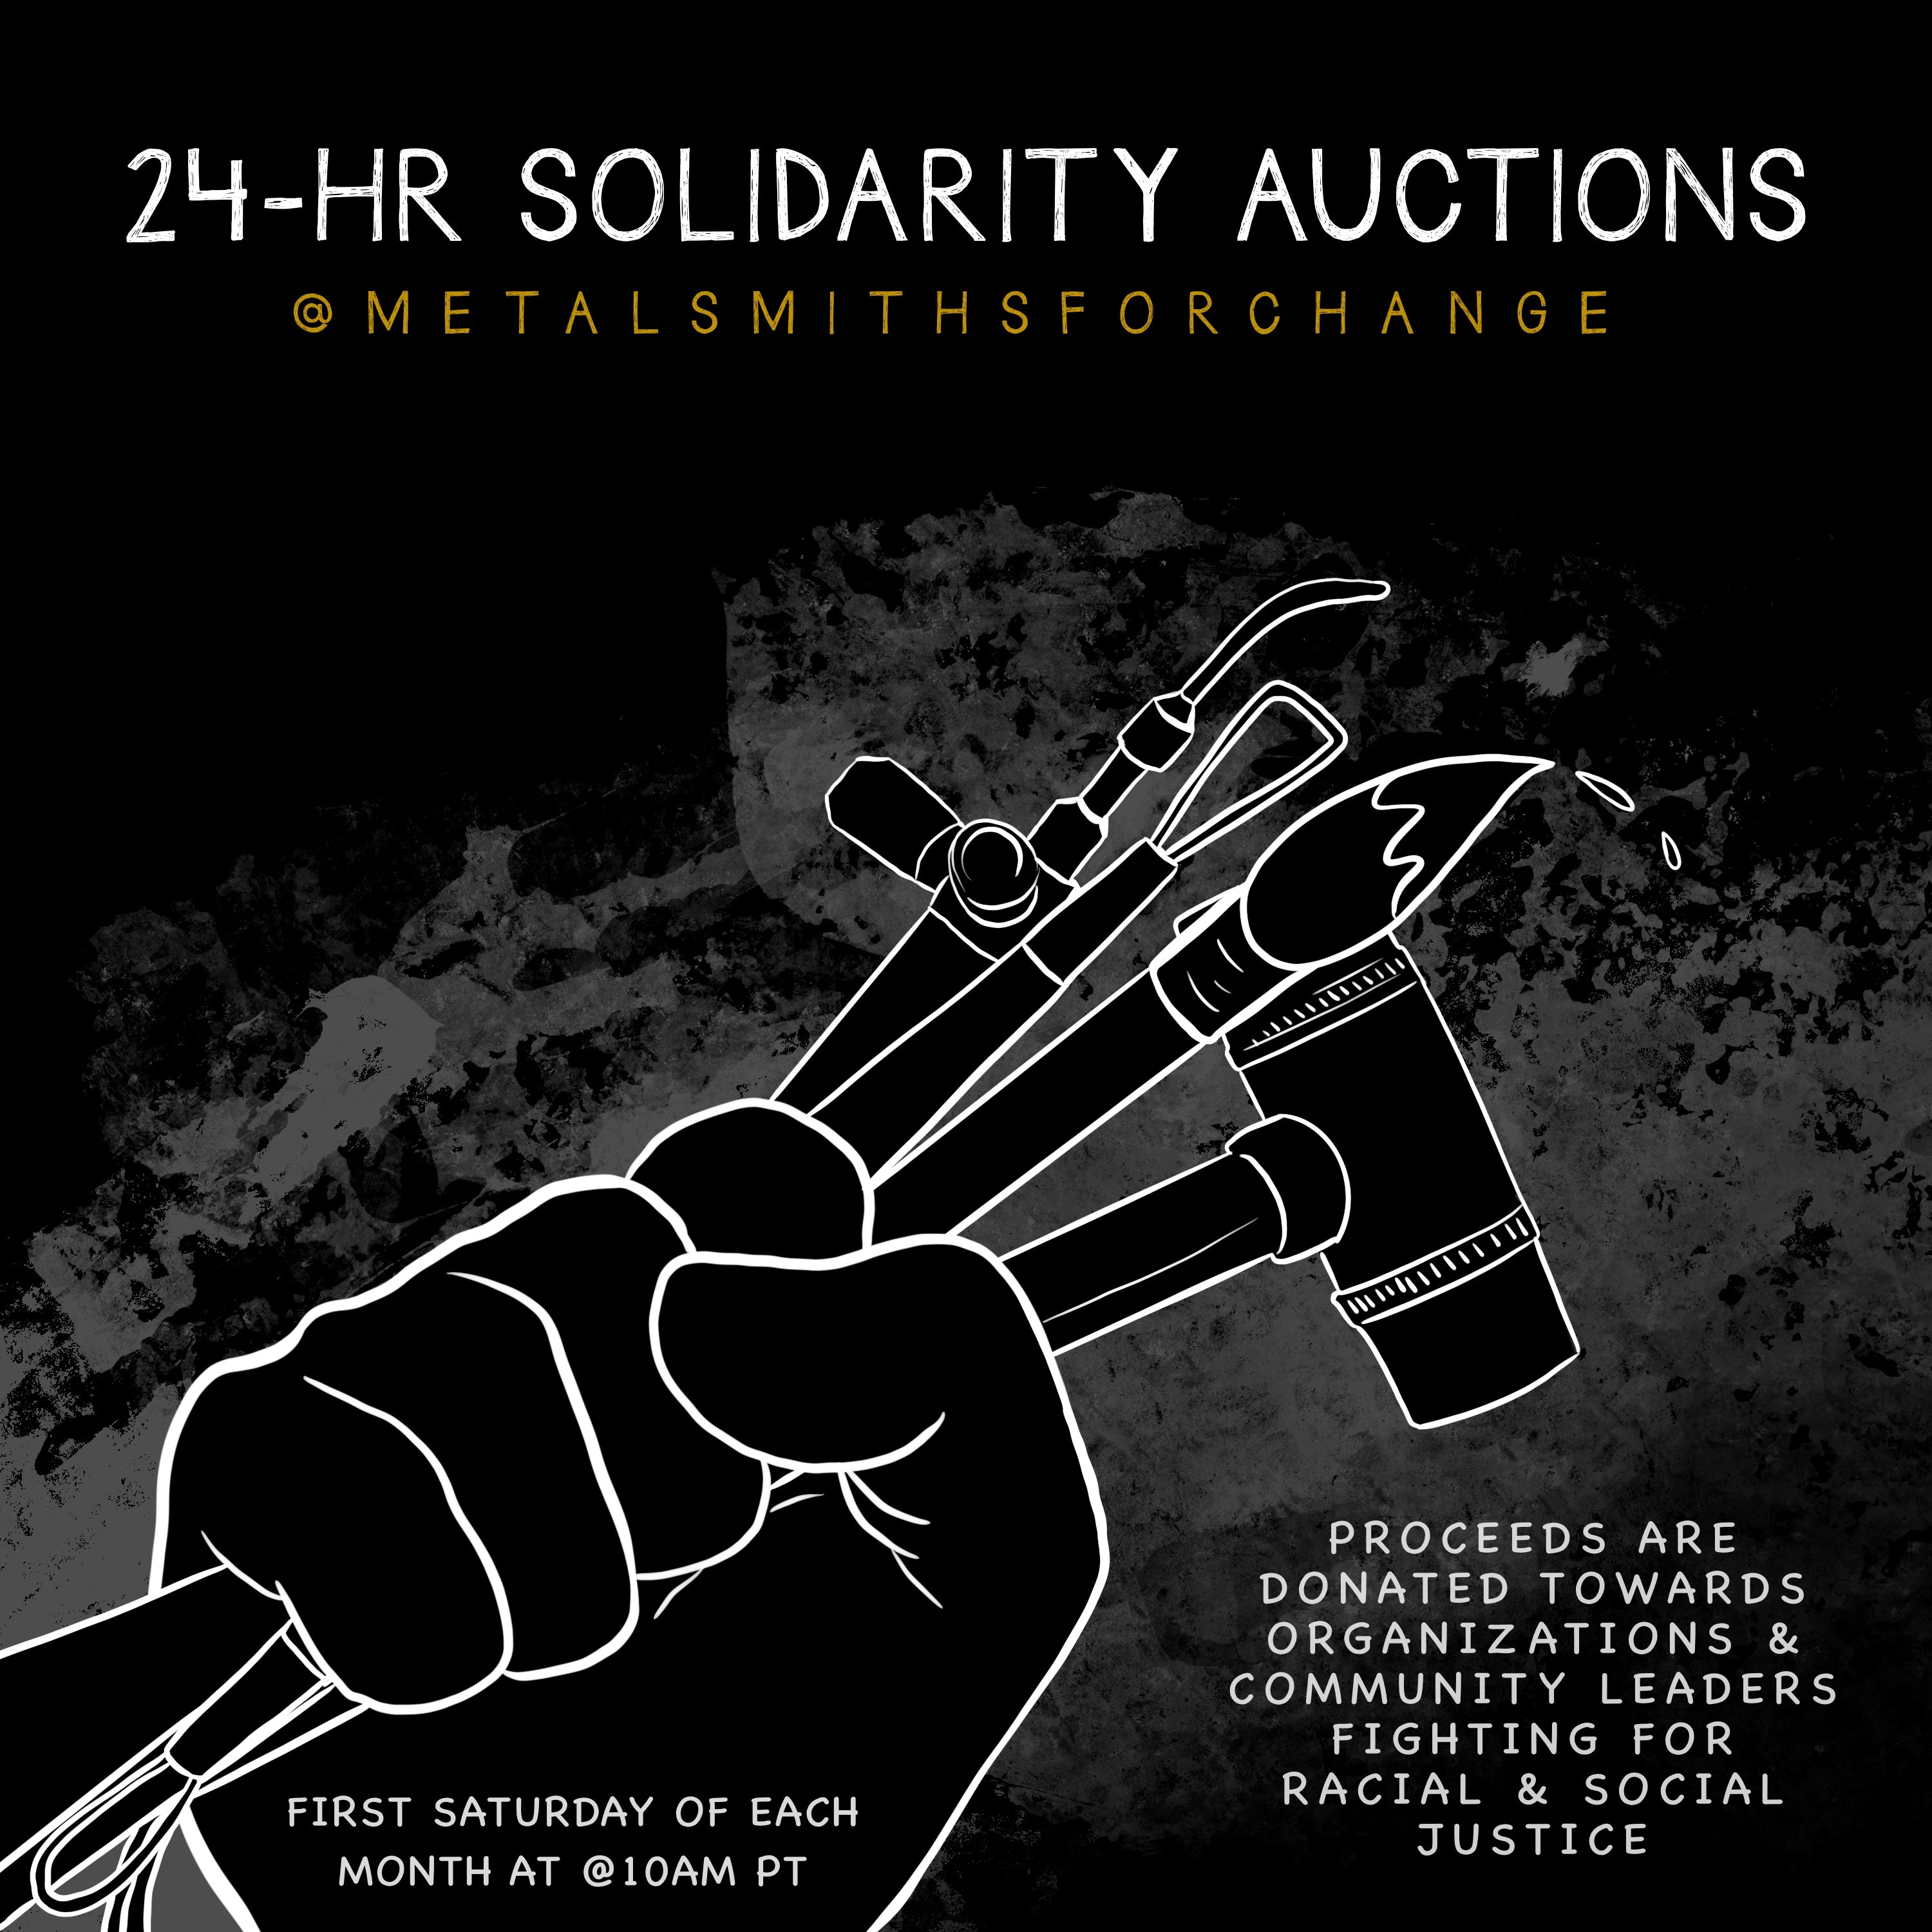 24 hr solidarity auction flyer